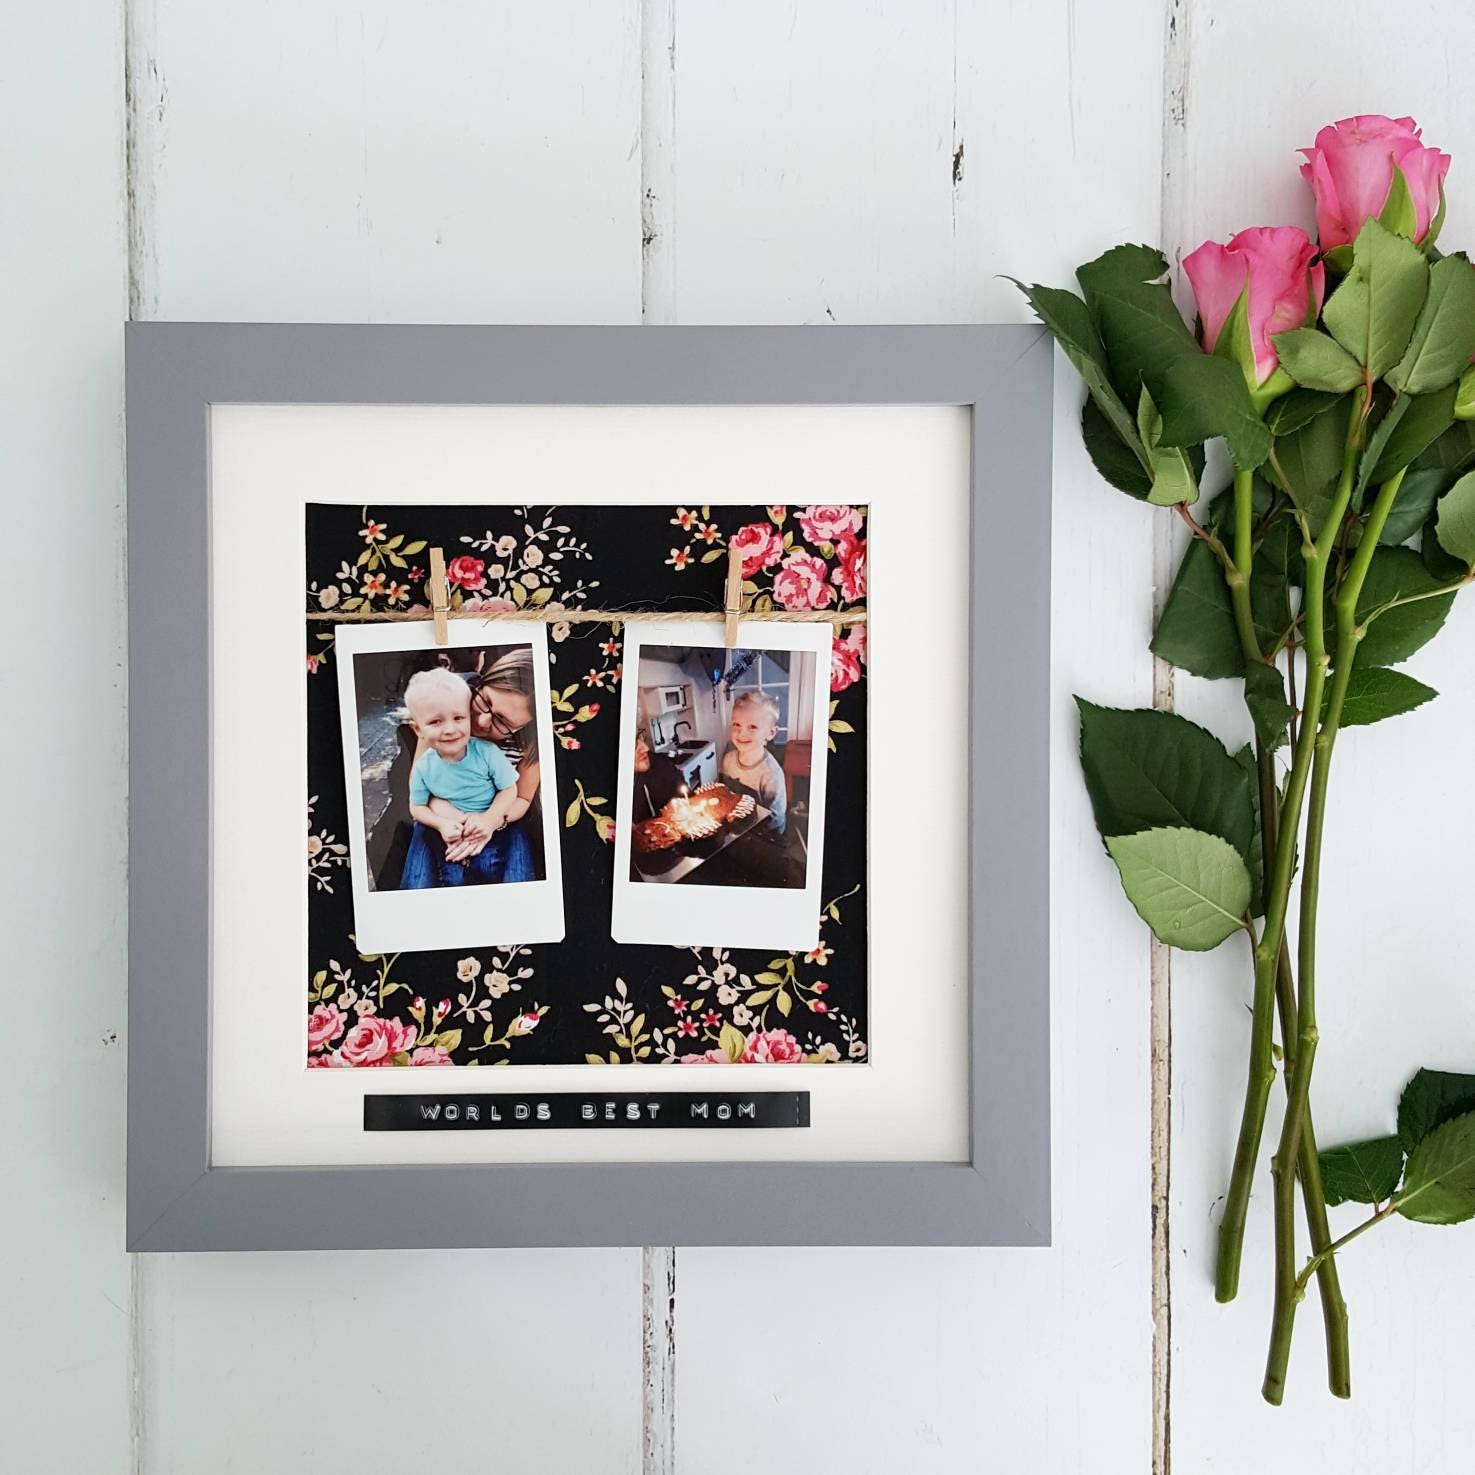 Mom Frame Best Gift Gifts For From Daughter